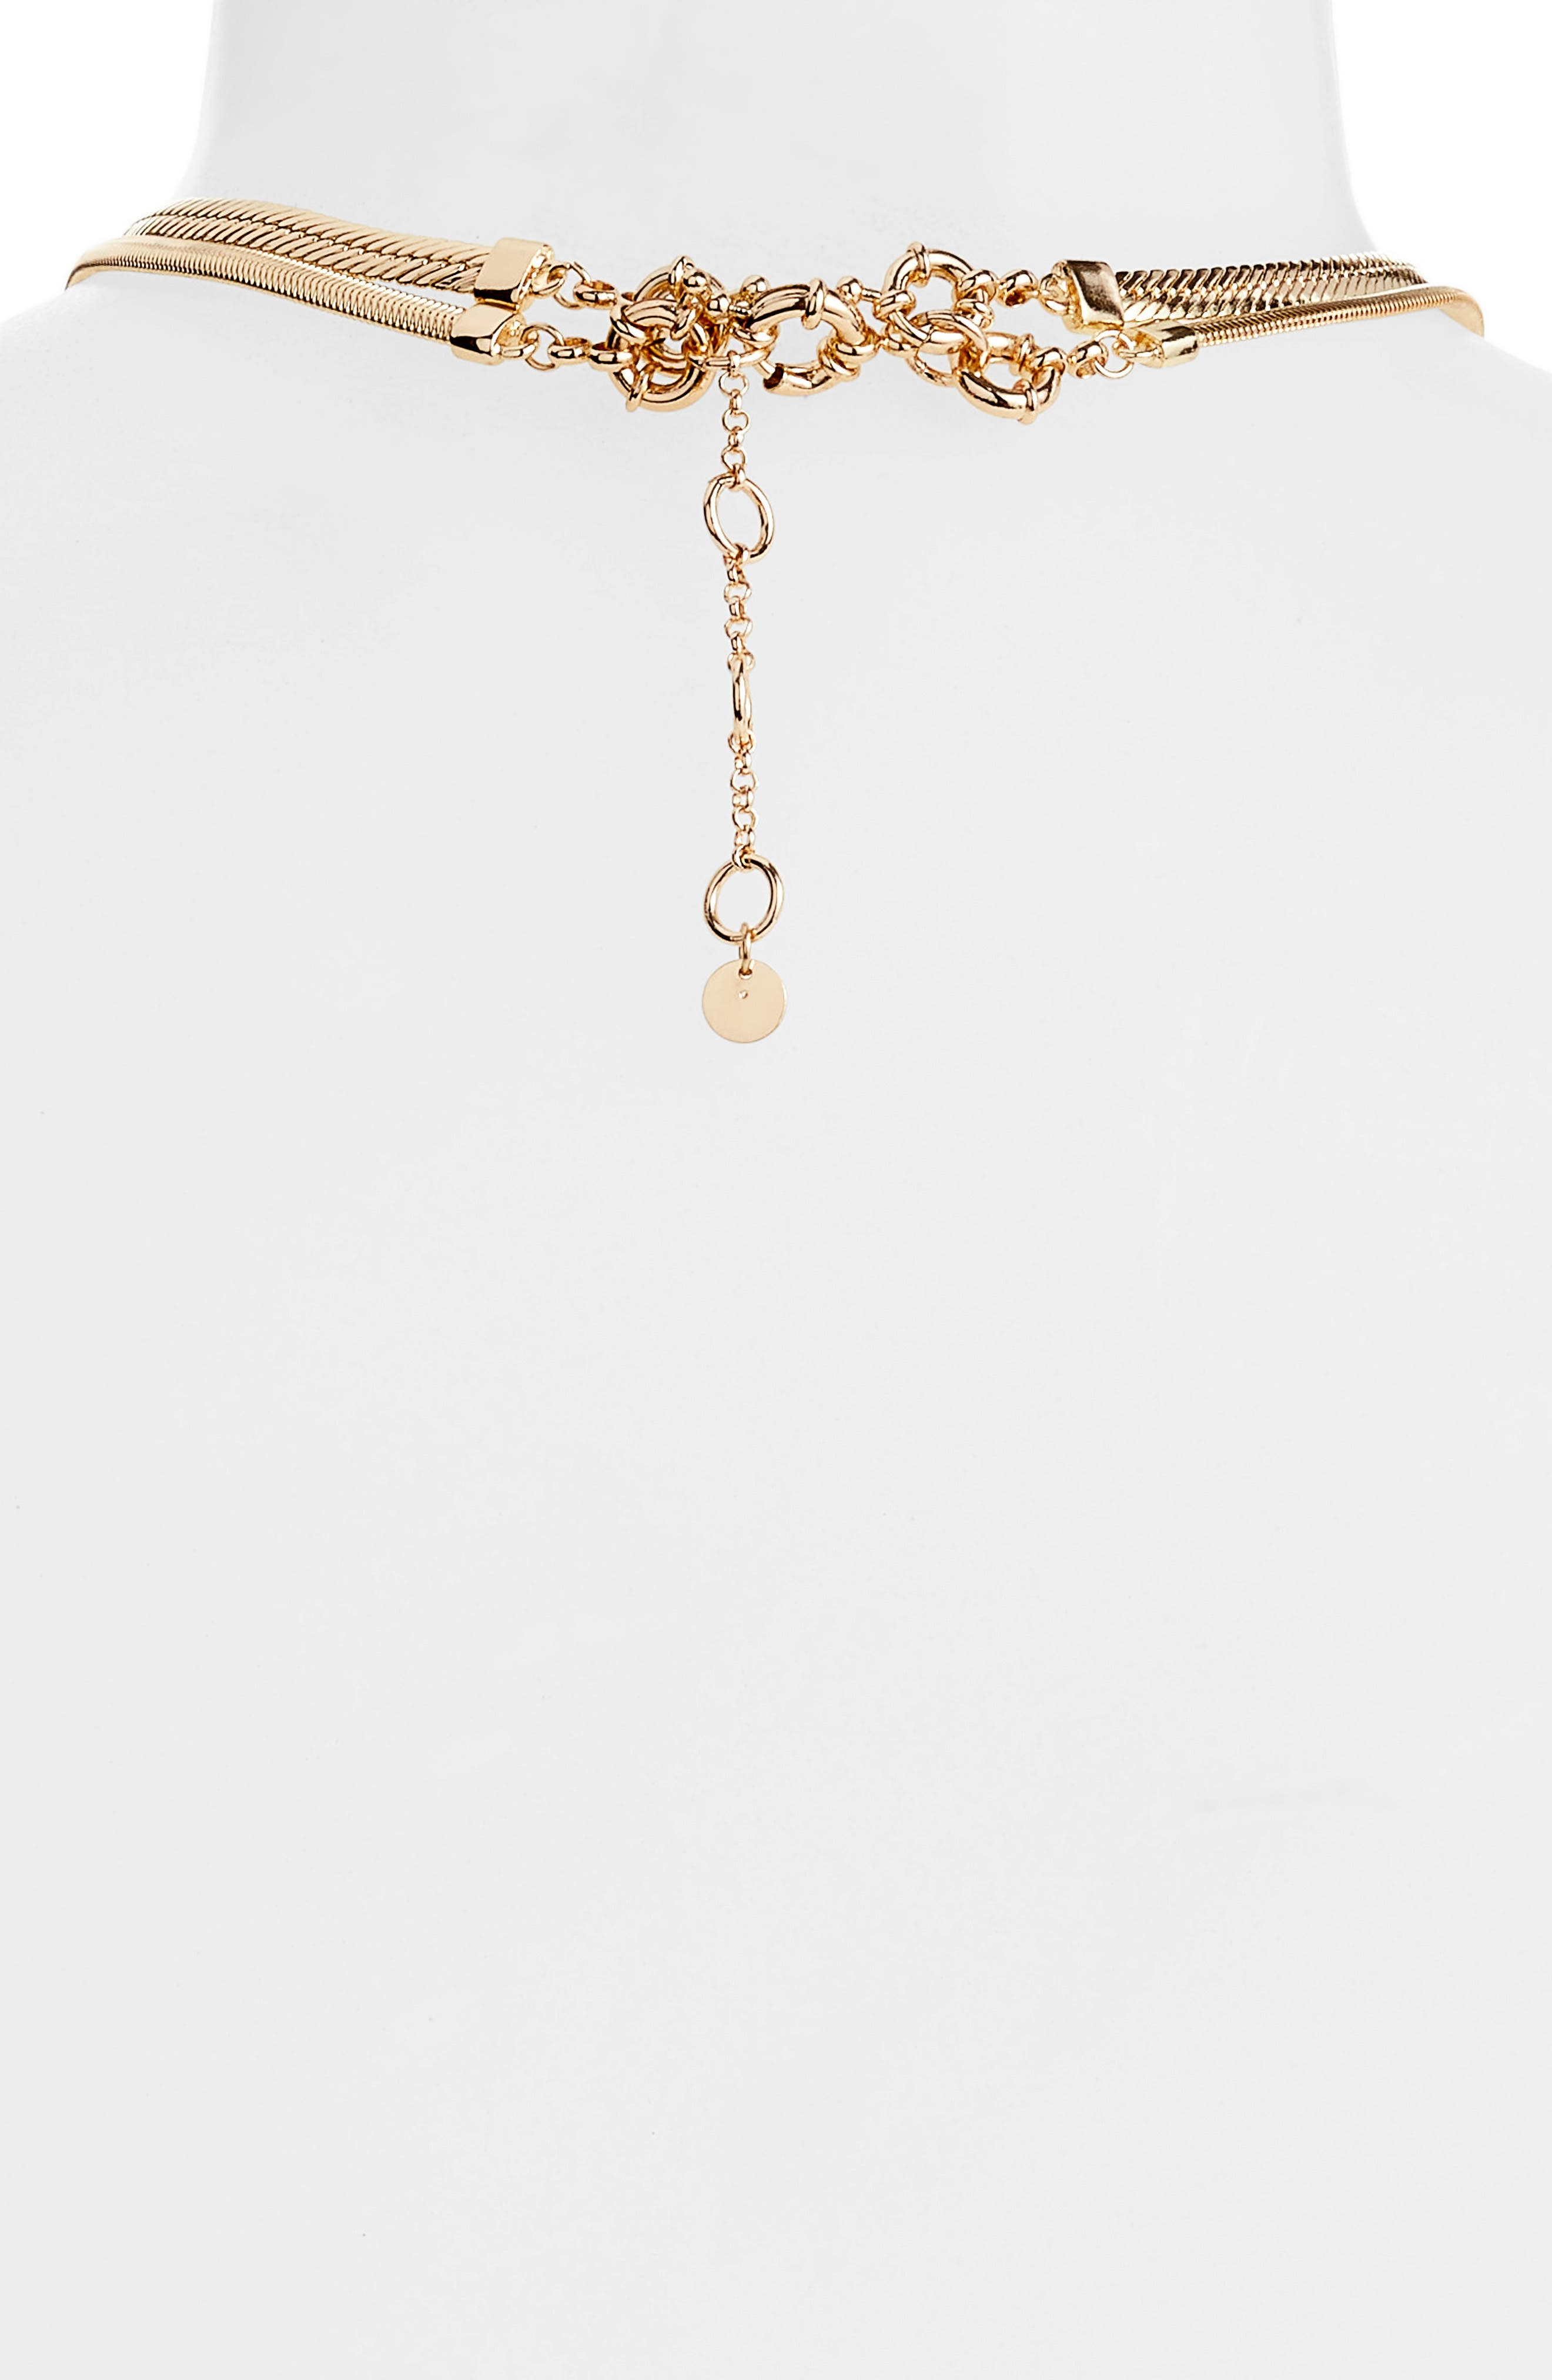 2-in-1 Snake Chain Lariat Necklace,                             Alternate thumbnail 4, color,                             GOLD